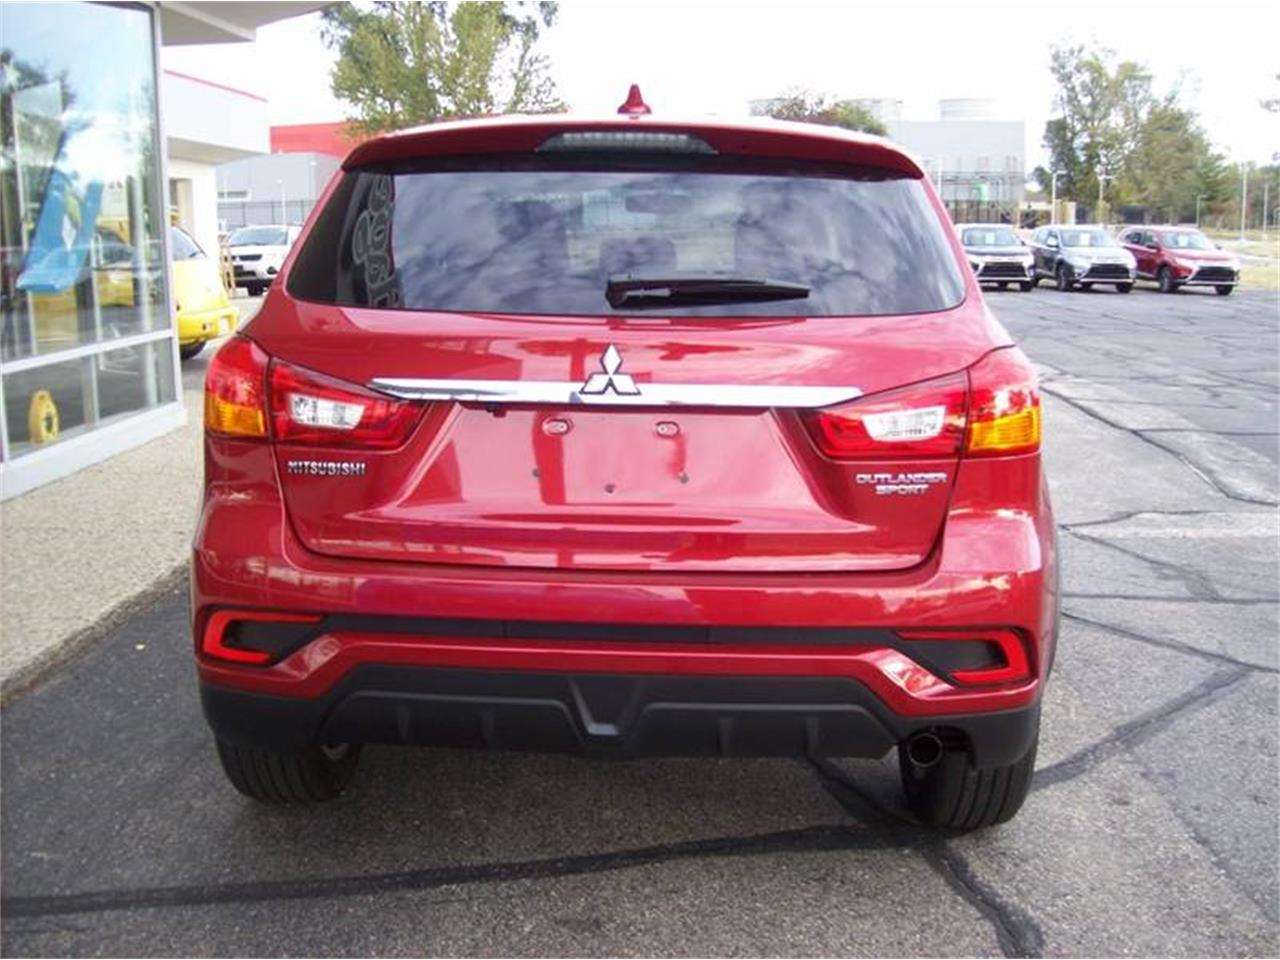 Large Picture of '18 Mitsubishi Outlander - $17,499.00 Offered by Verhage Mitsubishi - M5CZ